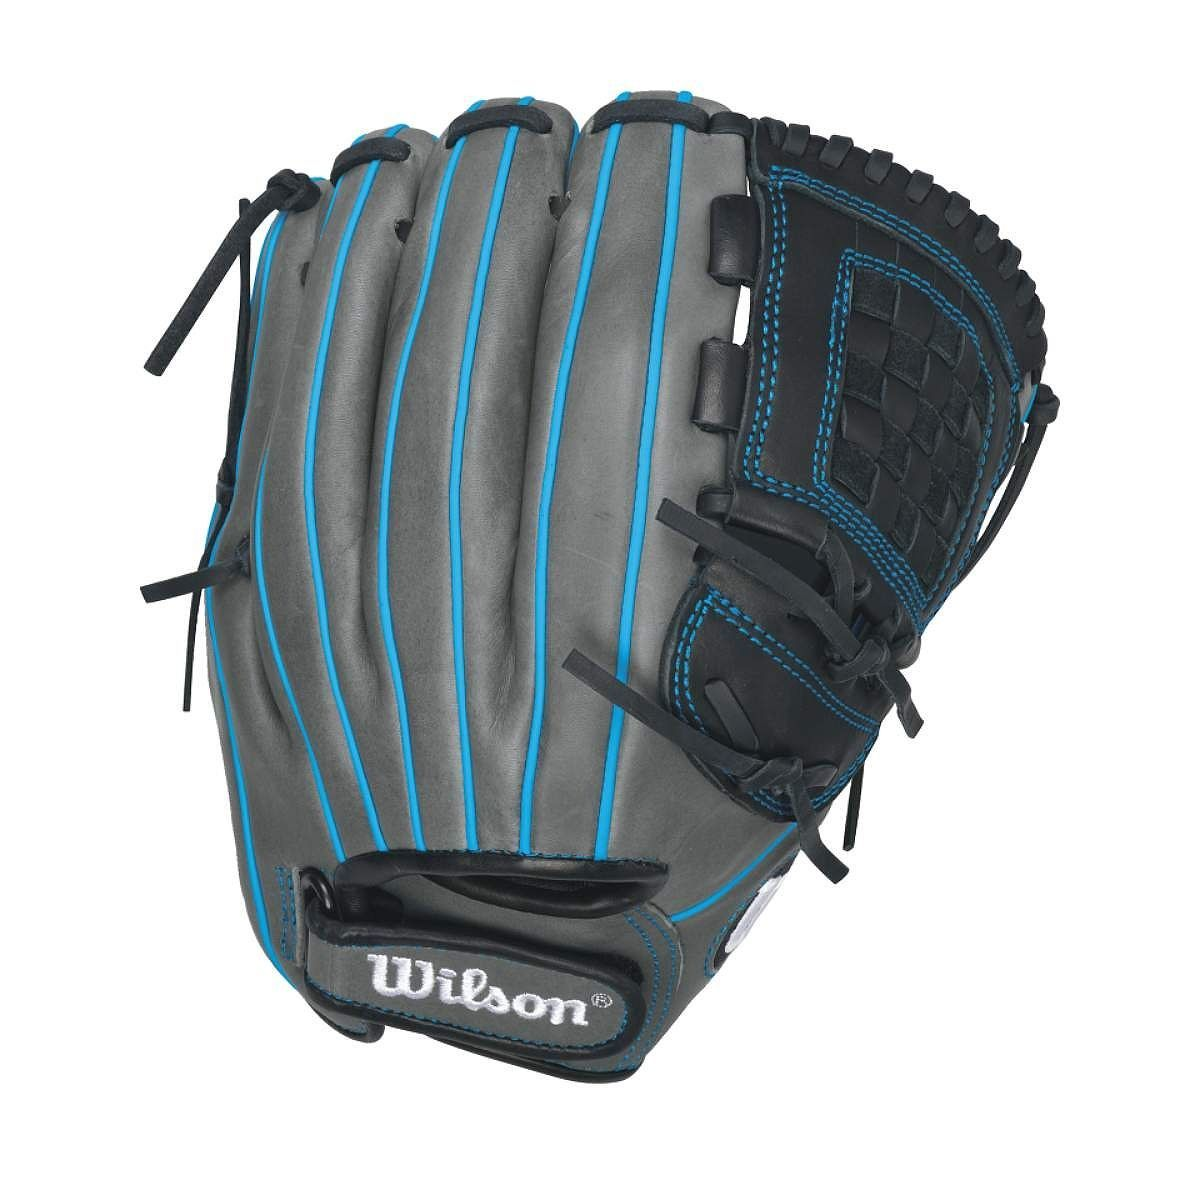 Onyx Fp12 Electric Blue Fastpitch Softball Glove Softball Gloves Girls Softball Gloves Fastpitch Softball Gloves